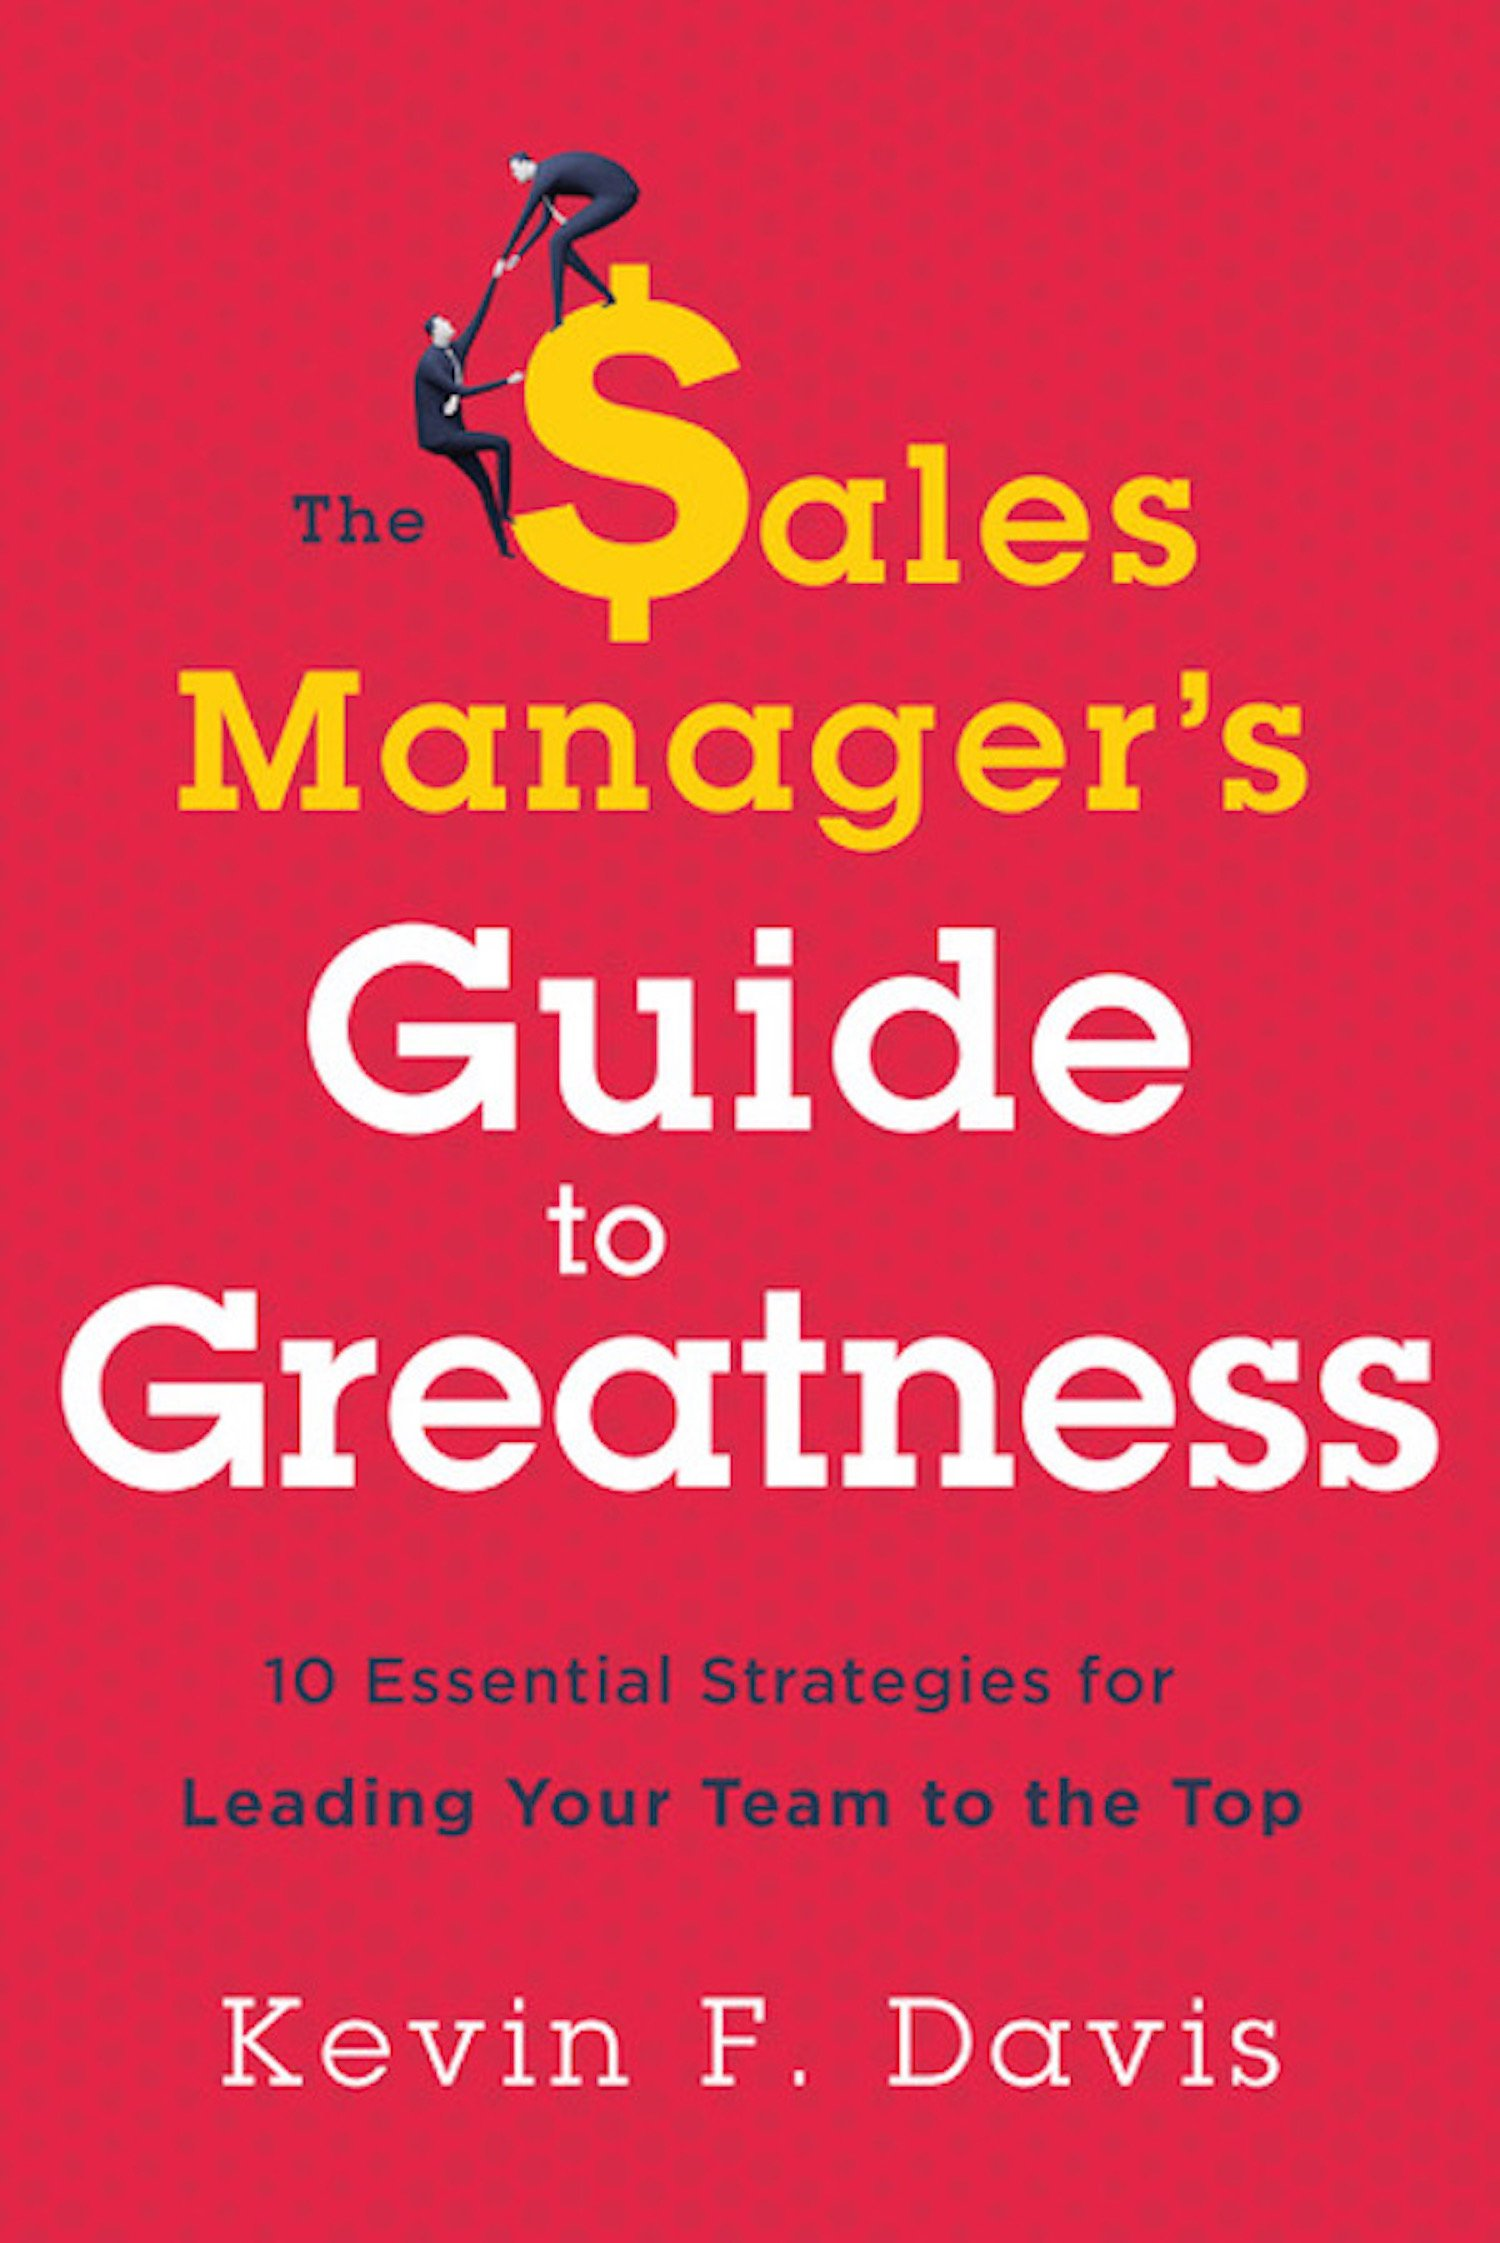 The Sales Manager's Guide to Greatness: Ten Essential Strategies for  Leading Your Team to the Top: Kevin F. Davis: 9781626343887: Amazon.com:  Books